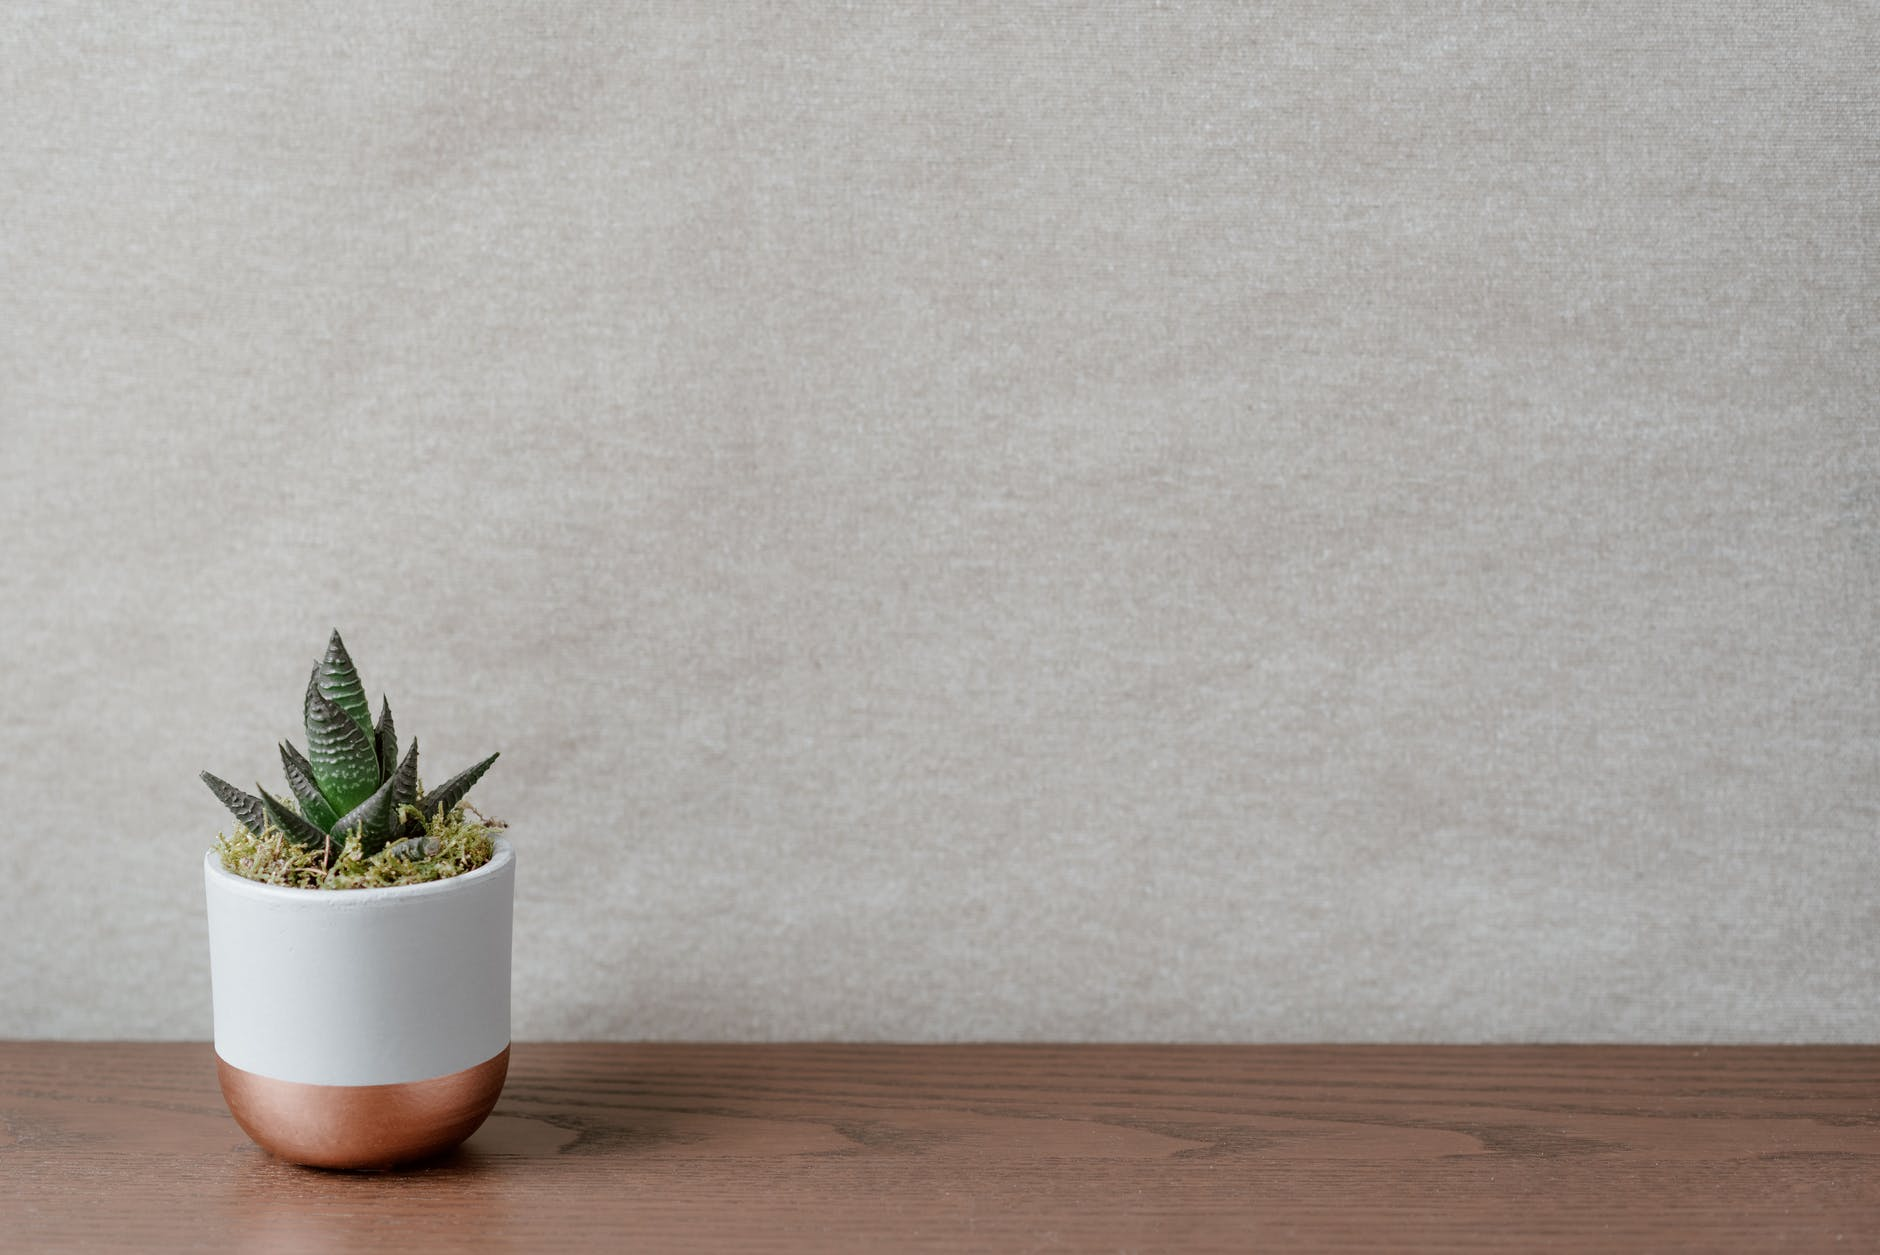 green plant in pot on wooden table in house